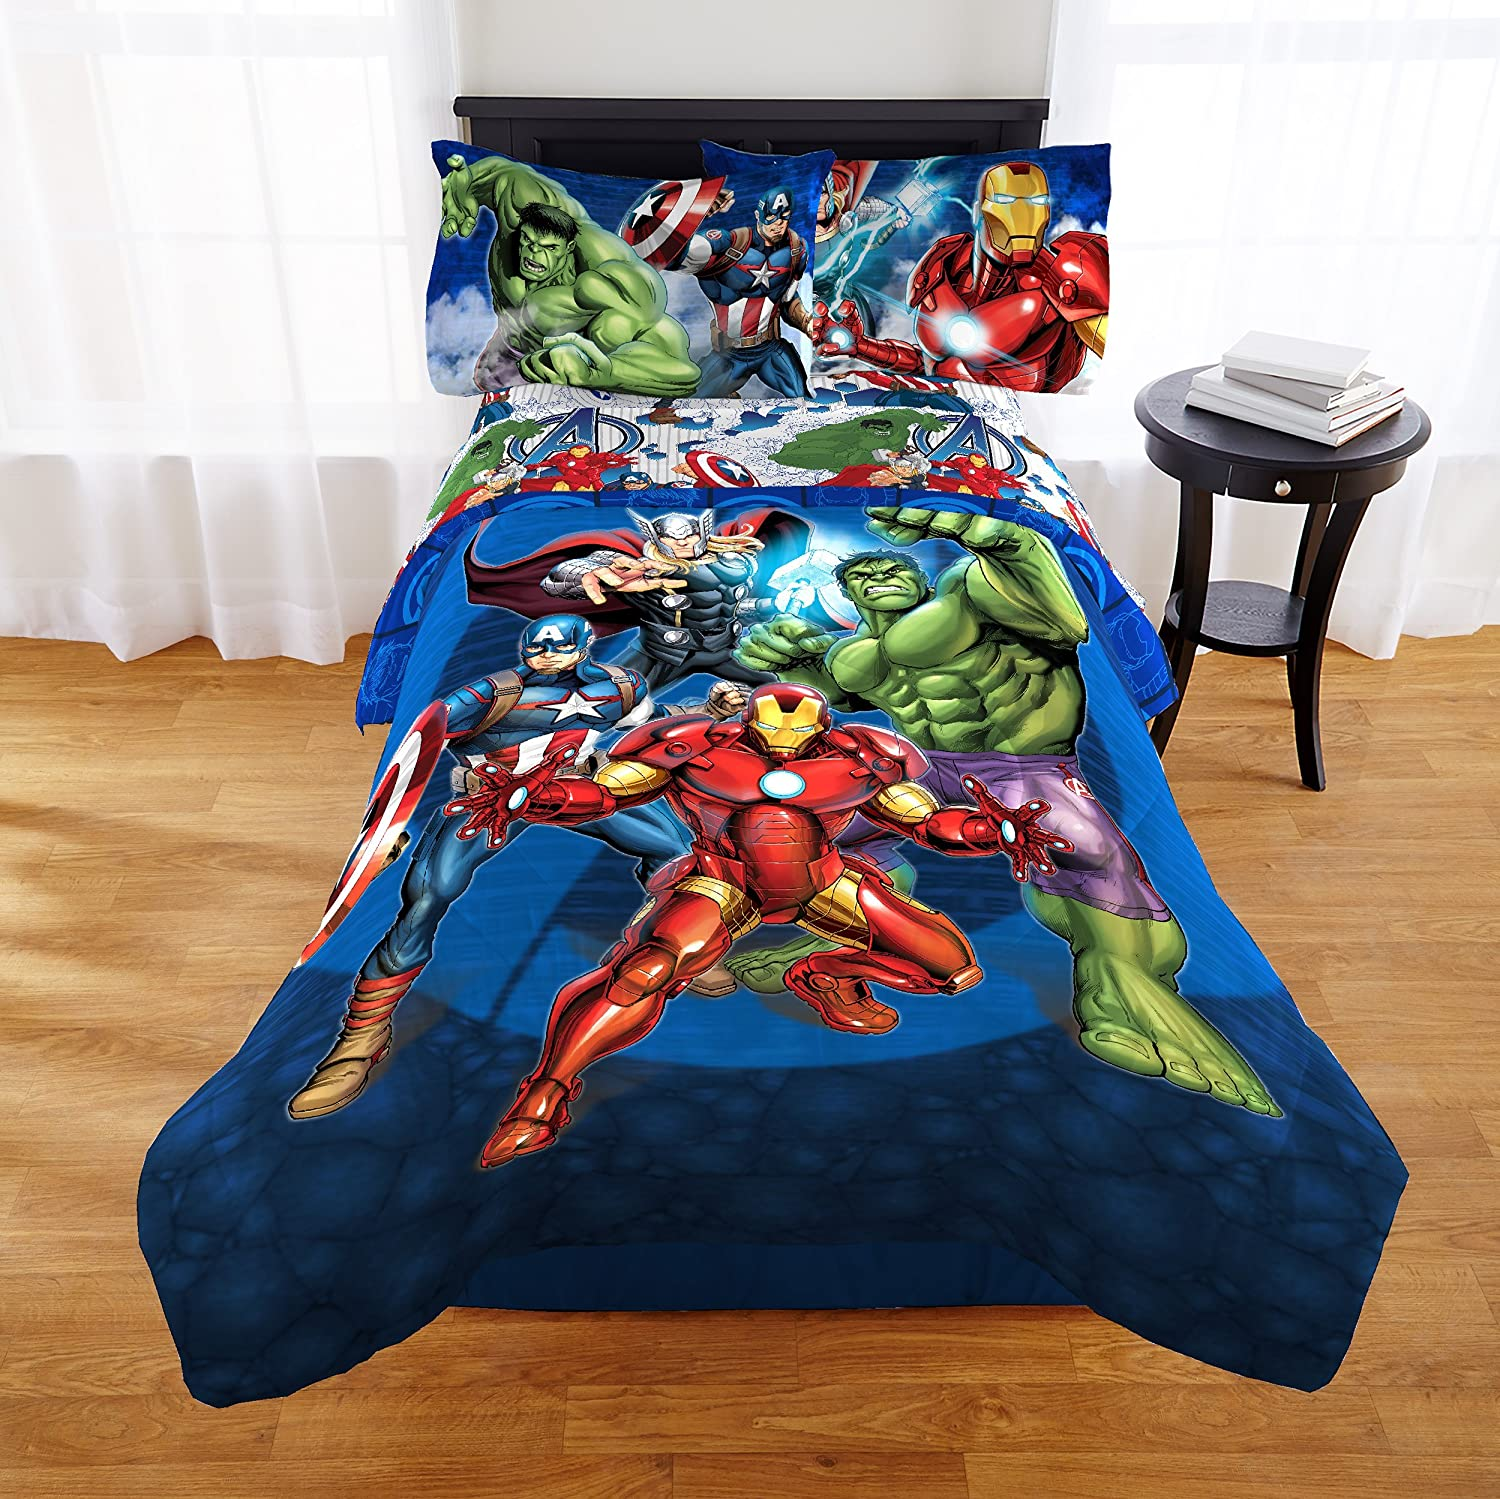 Marvel Avengers Blue Circle Twin/Full Comforter - Super Soft Kids Reversible Bedding features Iron Man, Hulk, Captain America, and Thor